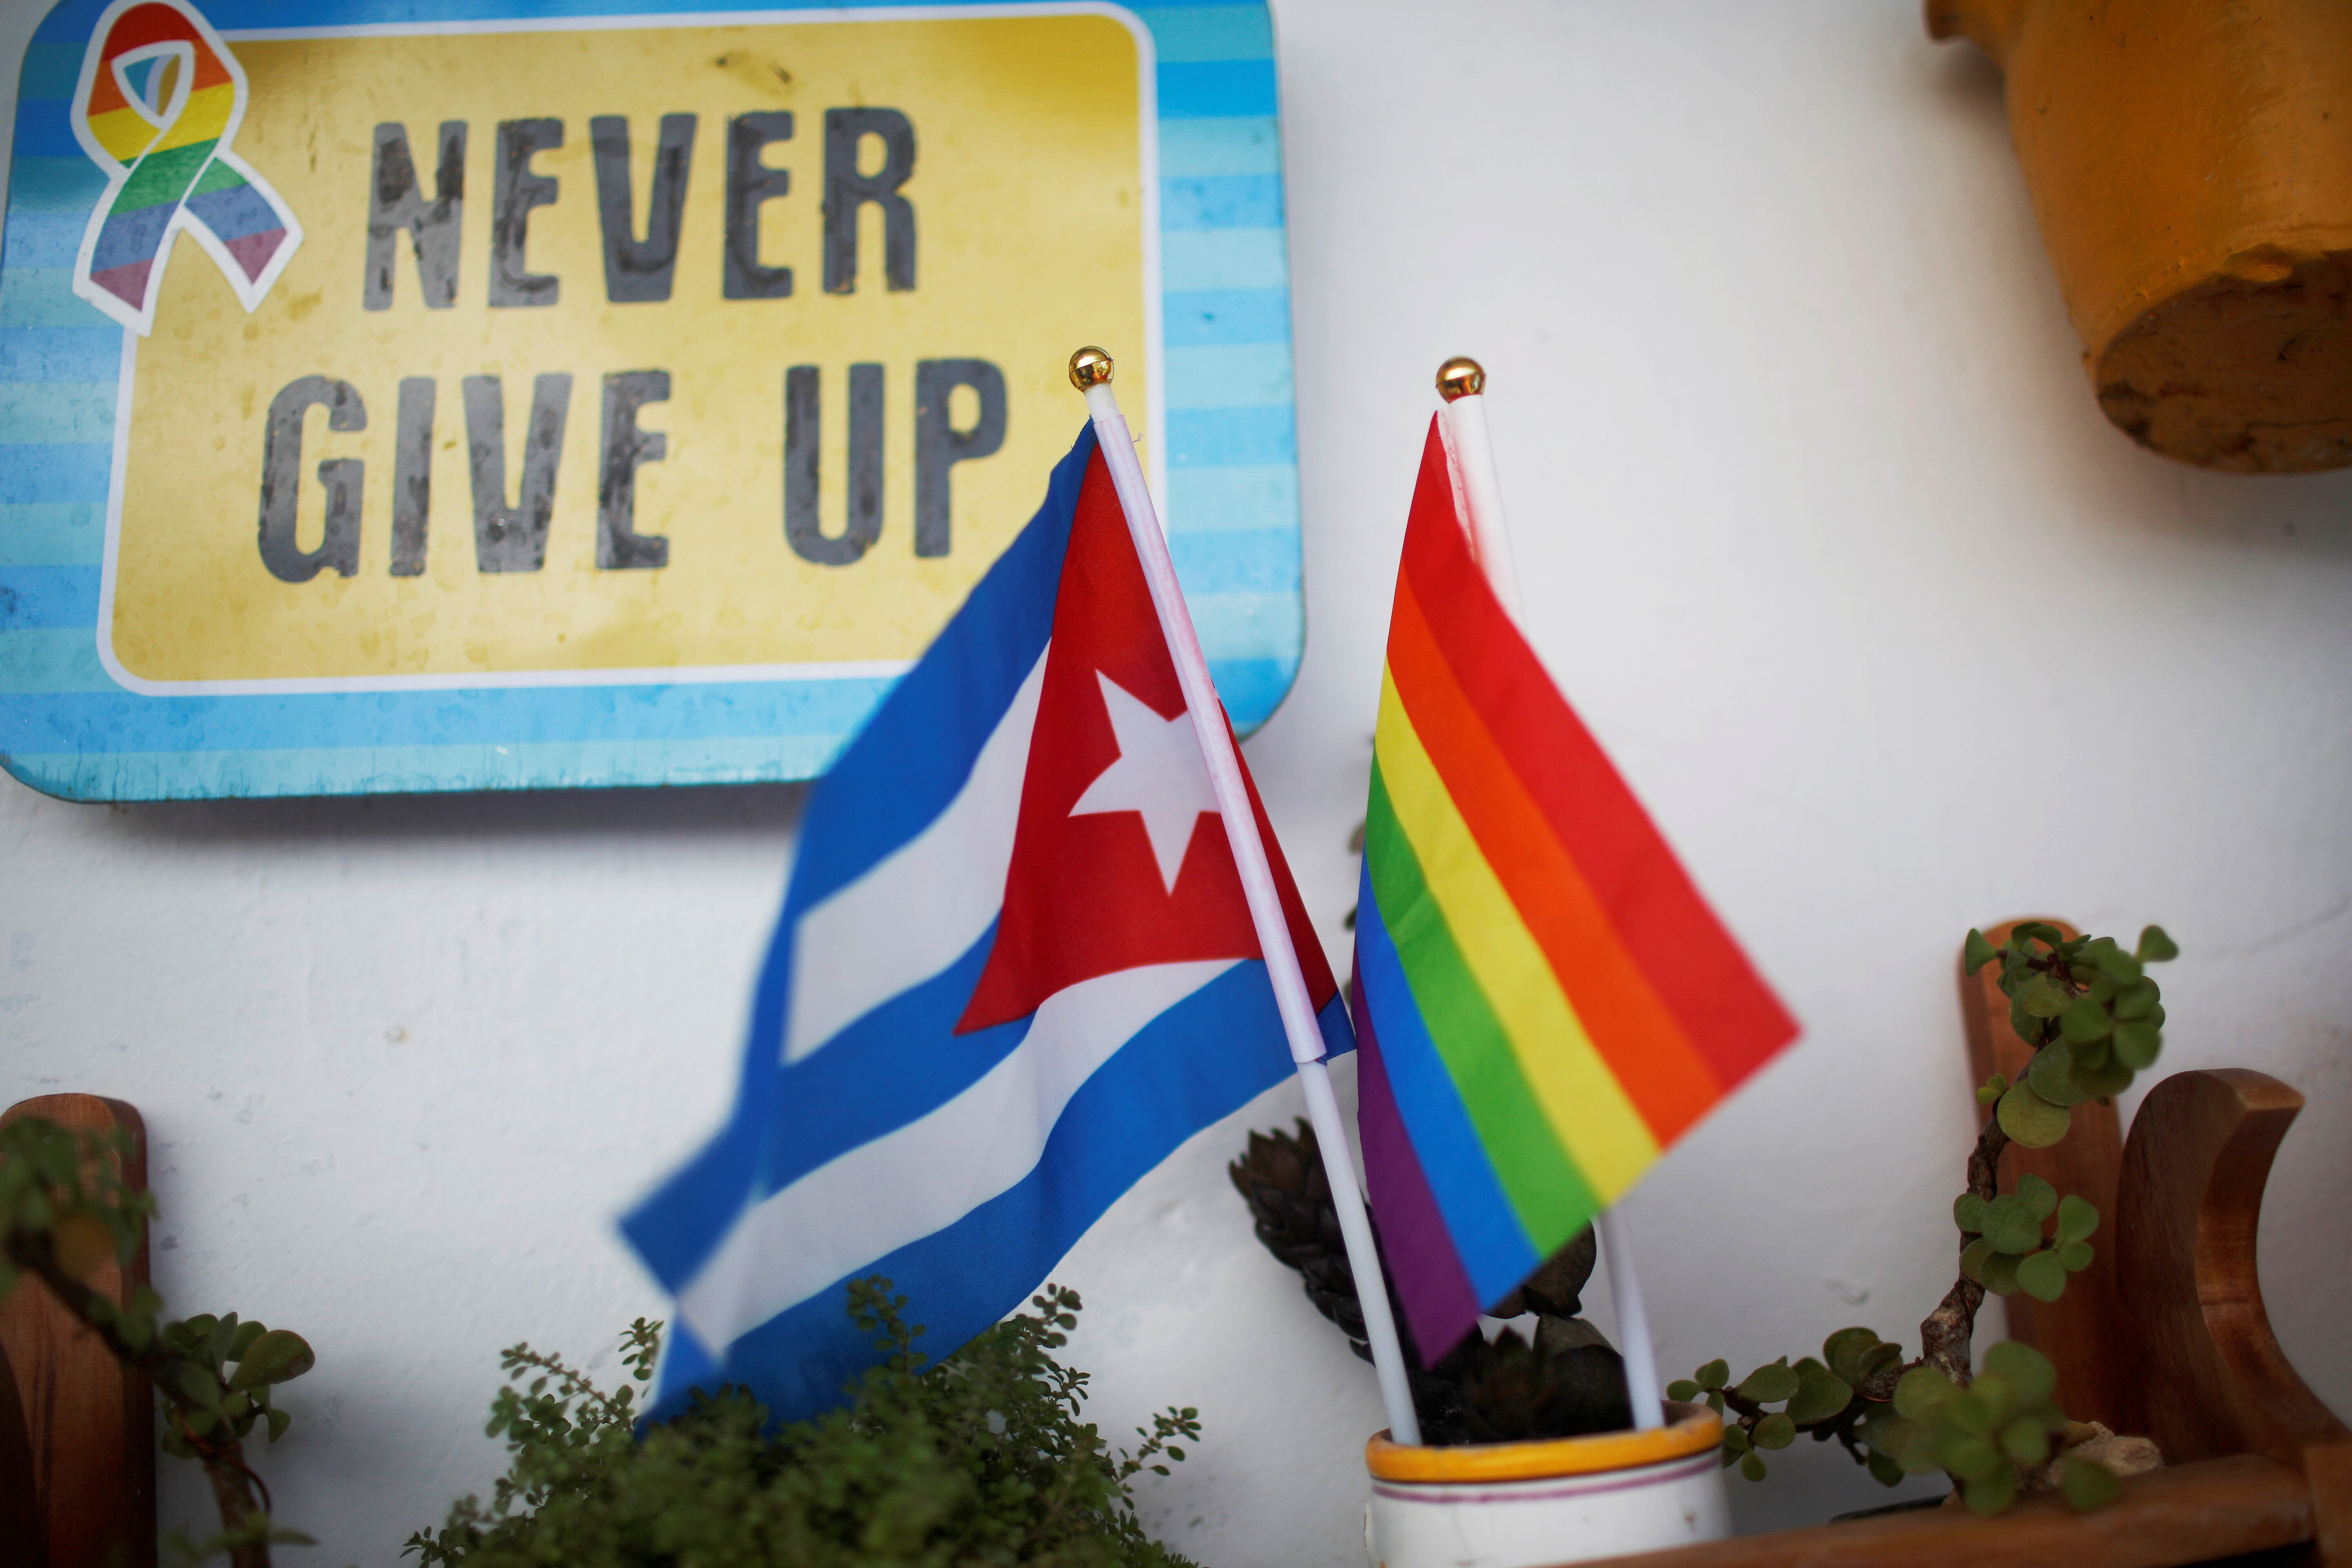 A Cuban flag and a Pride rainbow flag symbolising gay rights are seen at the balcony of the apartment of same-sex couple Mercedes Garcia and Onelia Miranda in Havana, Cuba August 10, 2018. Picture taken August 10, 2018. REUTERS/Tomas Bravo